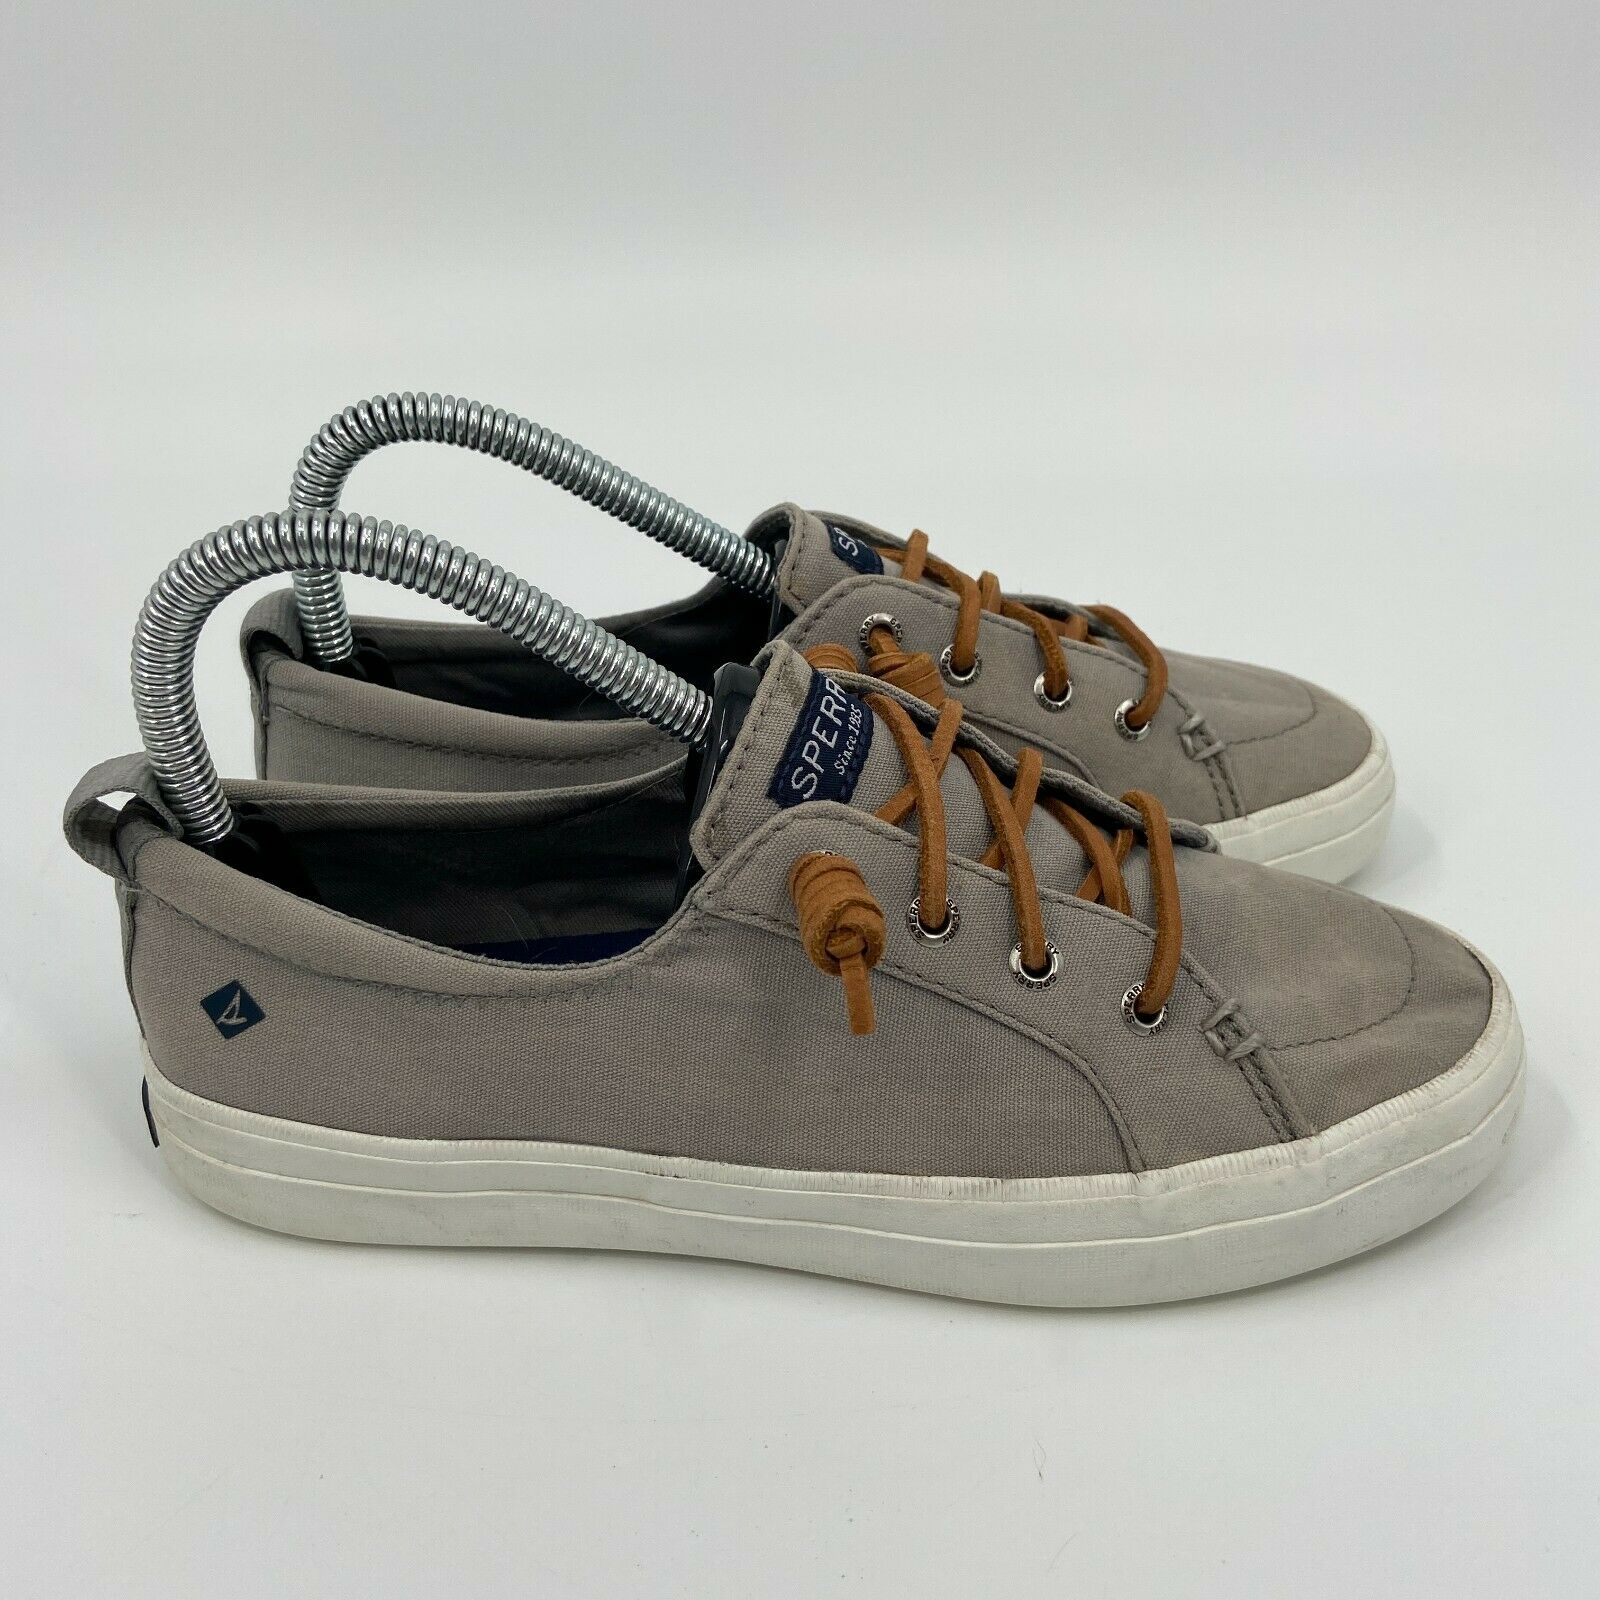 Sperry Womens Top Sider Crest Vibe STS81902 Gray Casual Sneaker Shoes Size 6.5